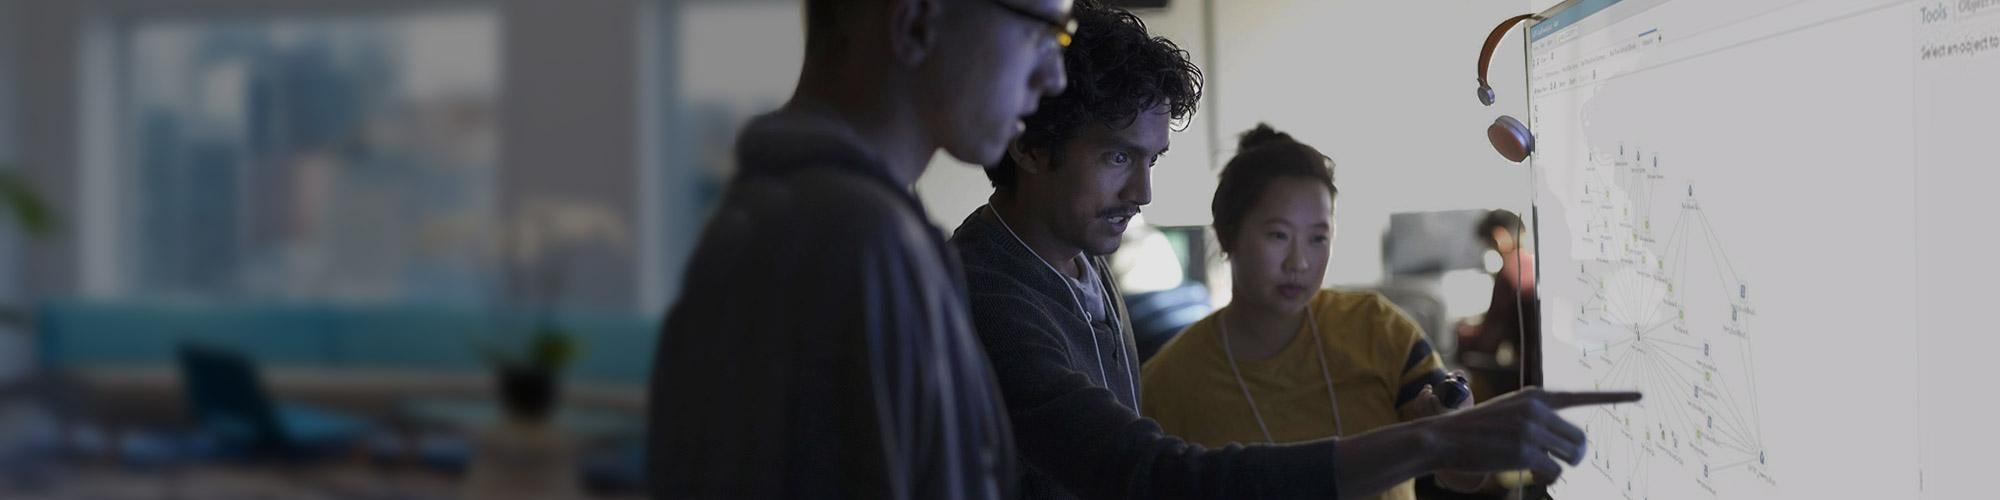 Group of young coworkers huddled around large computer monitor